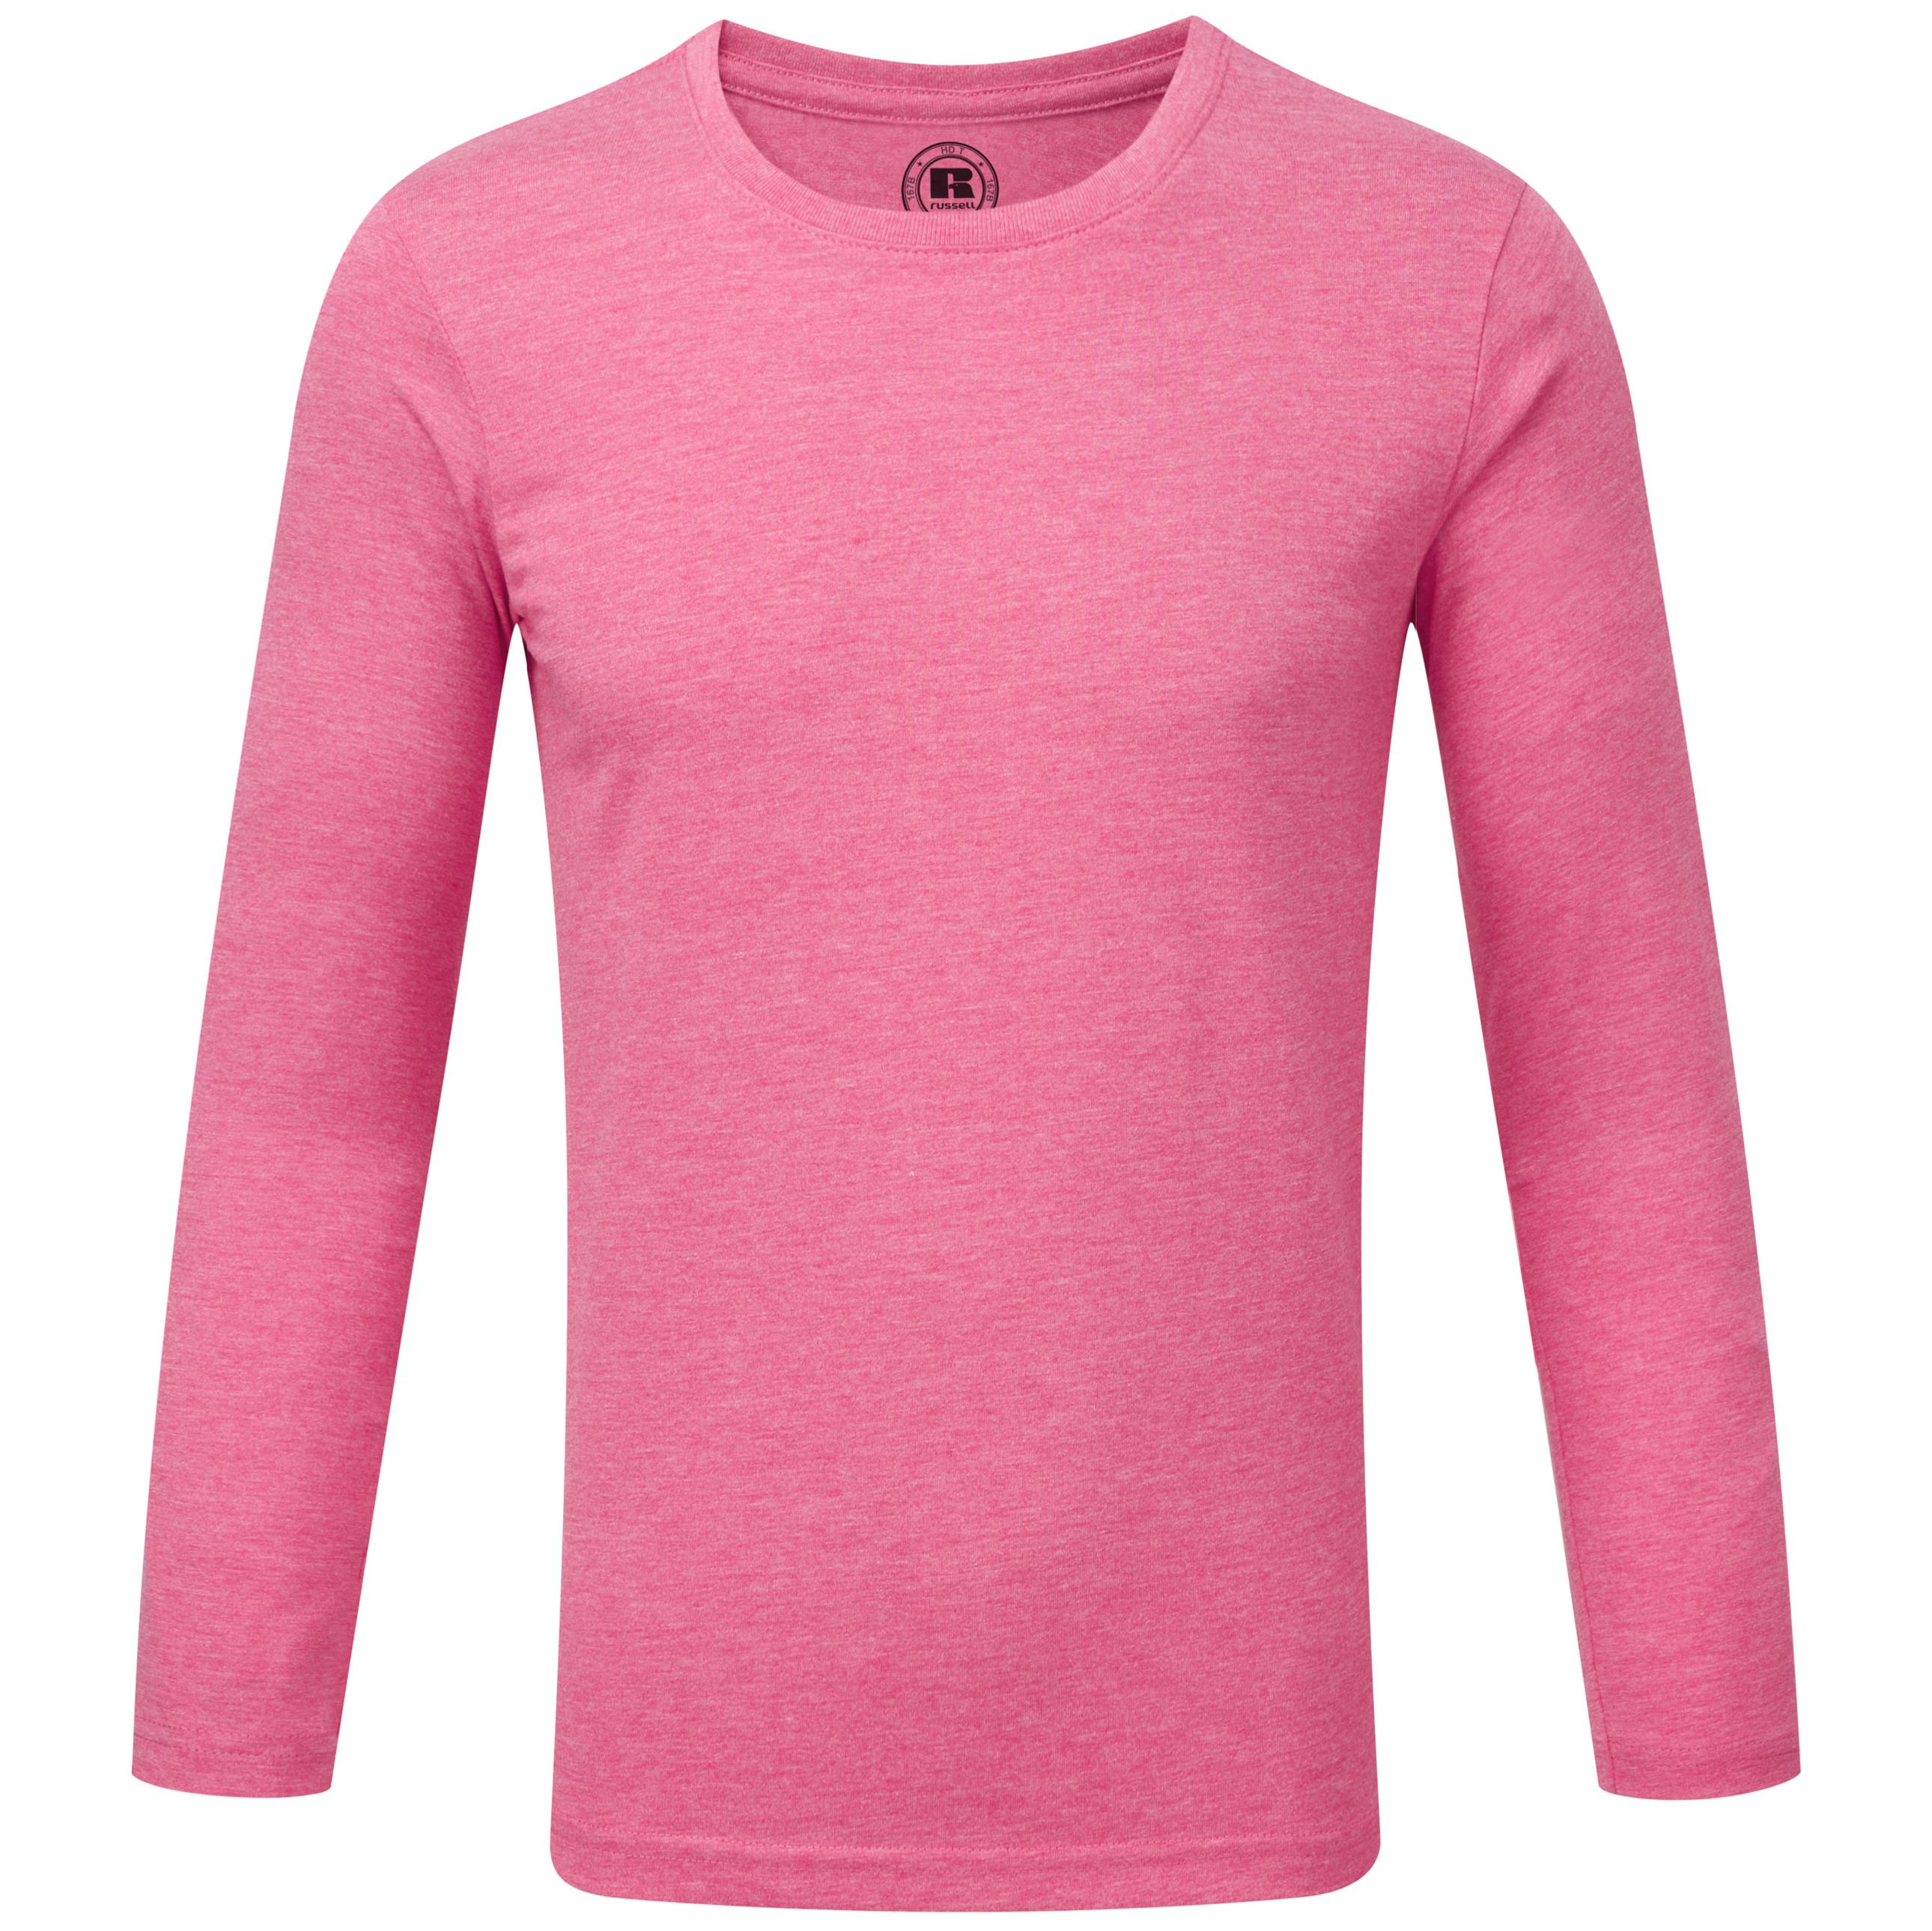 New Boys Russell Comfortable Crew Neck Long Sleeve HD T-Shirt Size 5//6-13//14 YRS